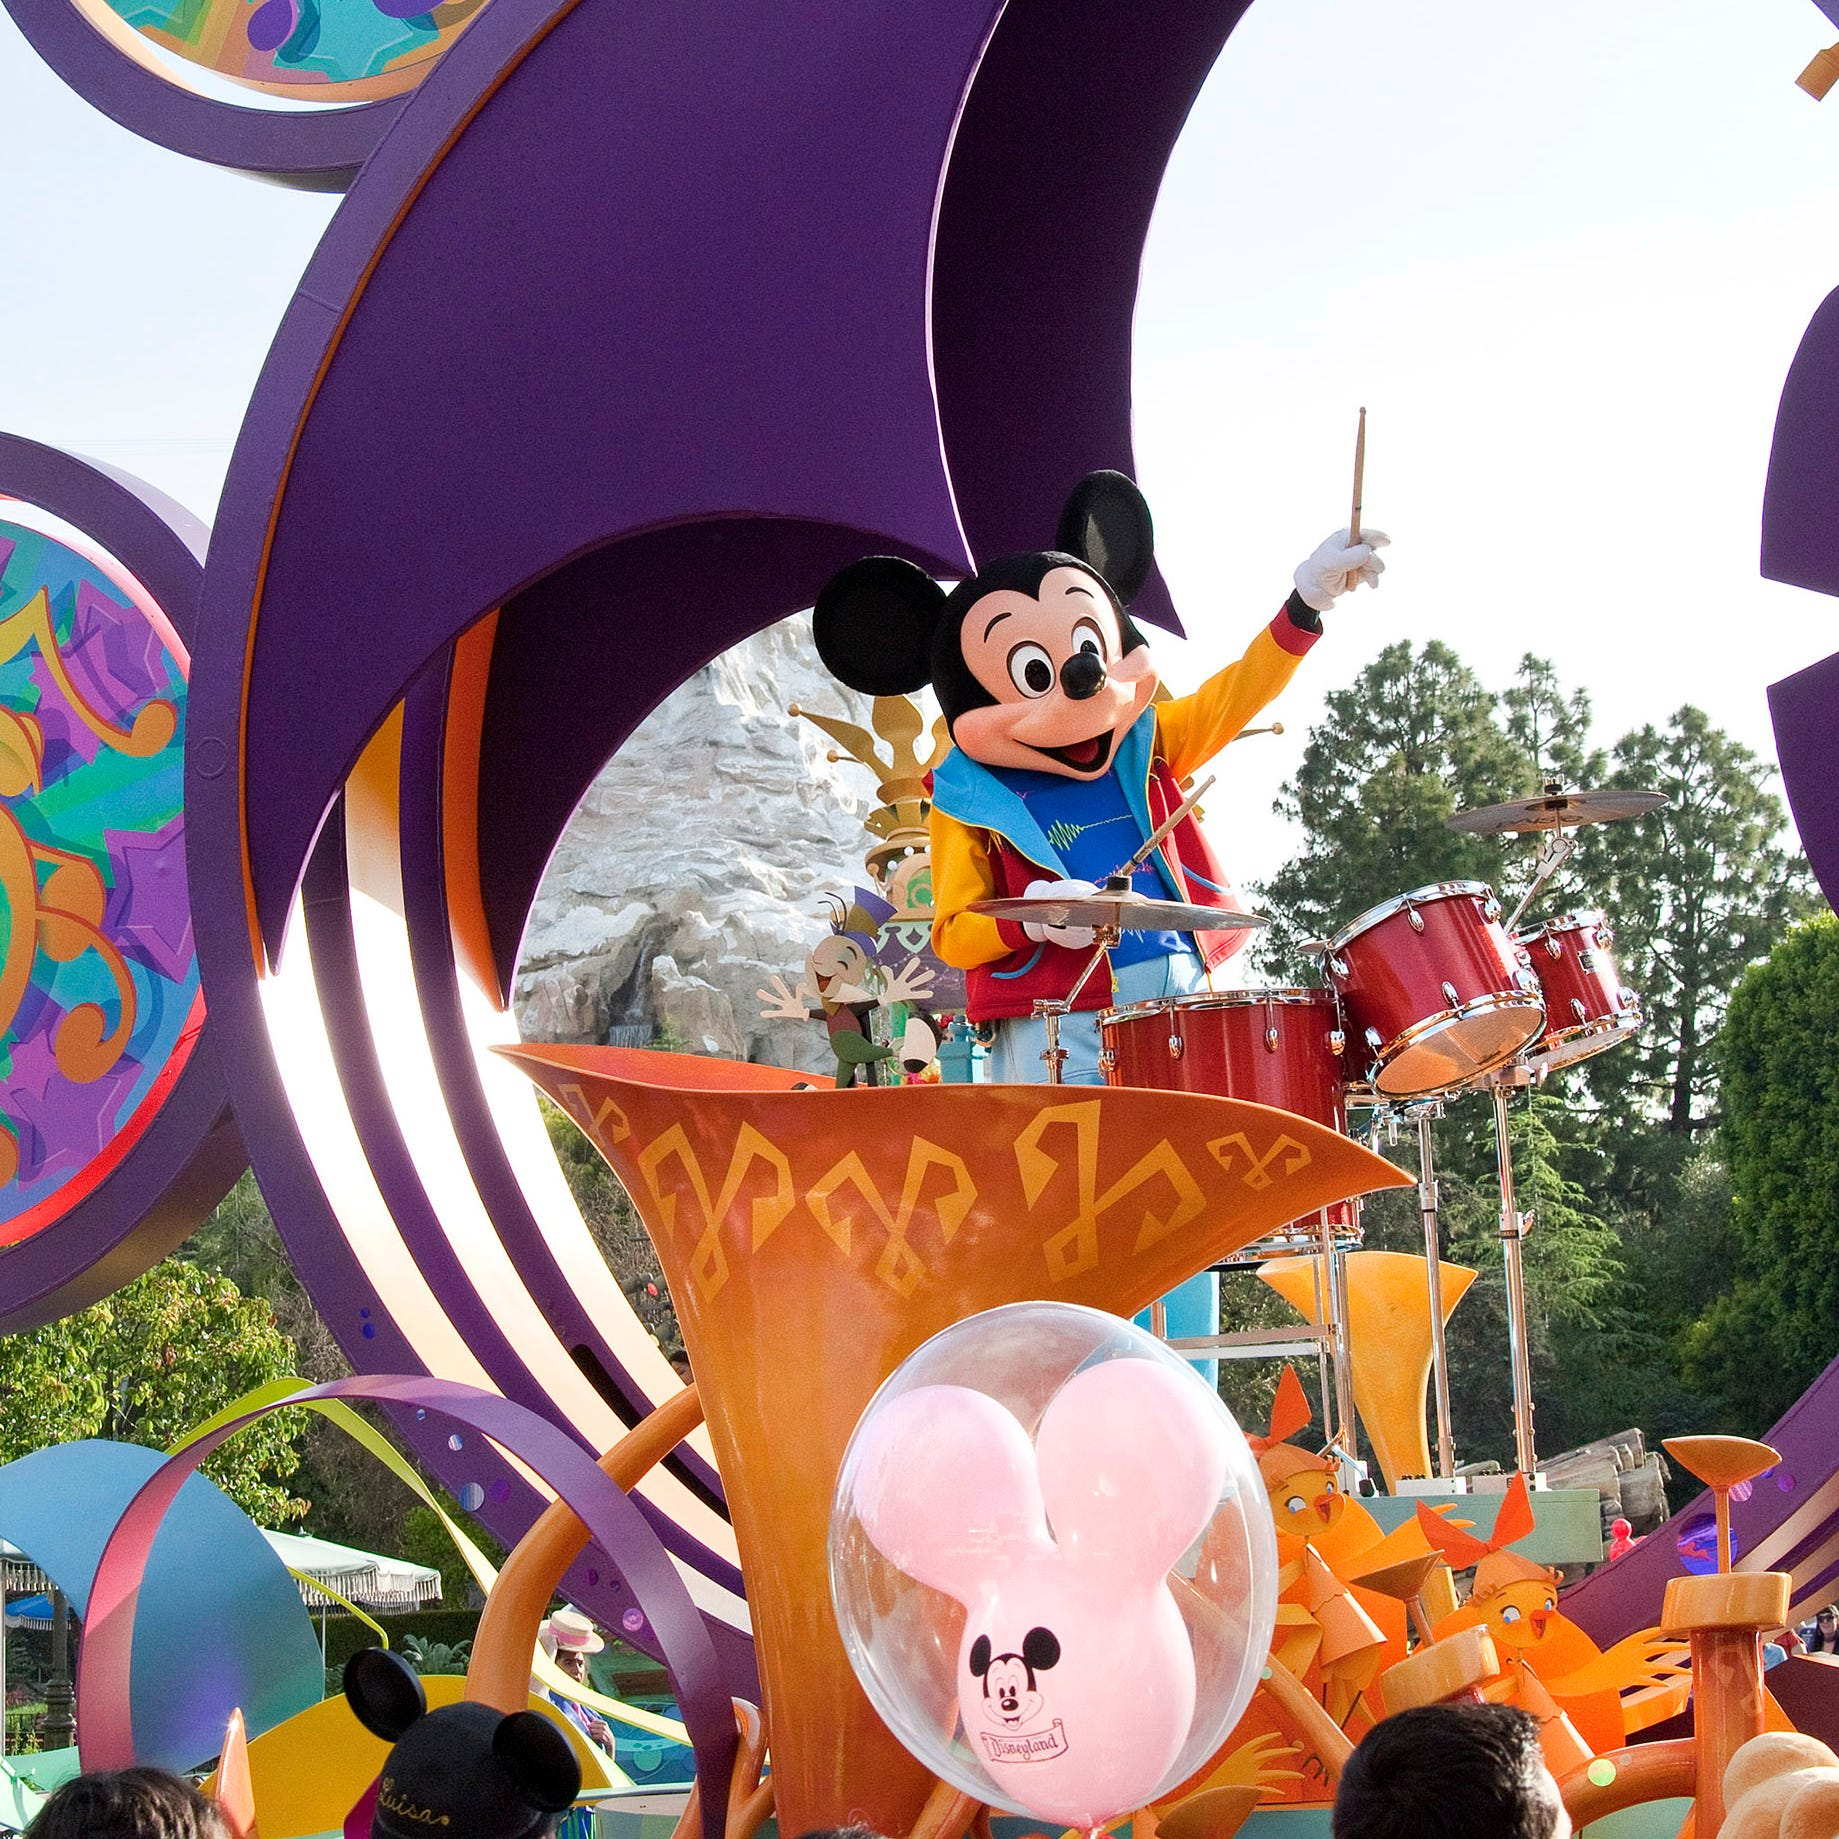 Discount Disneyland tickets are available – but there's a catch